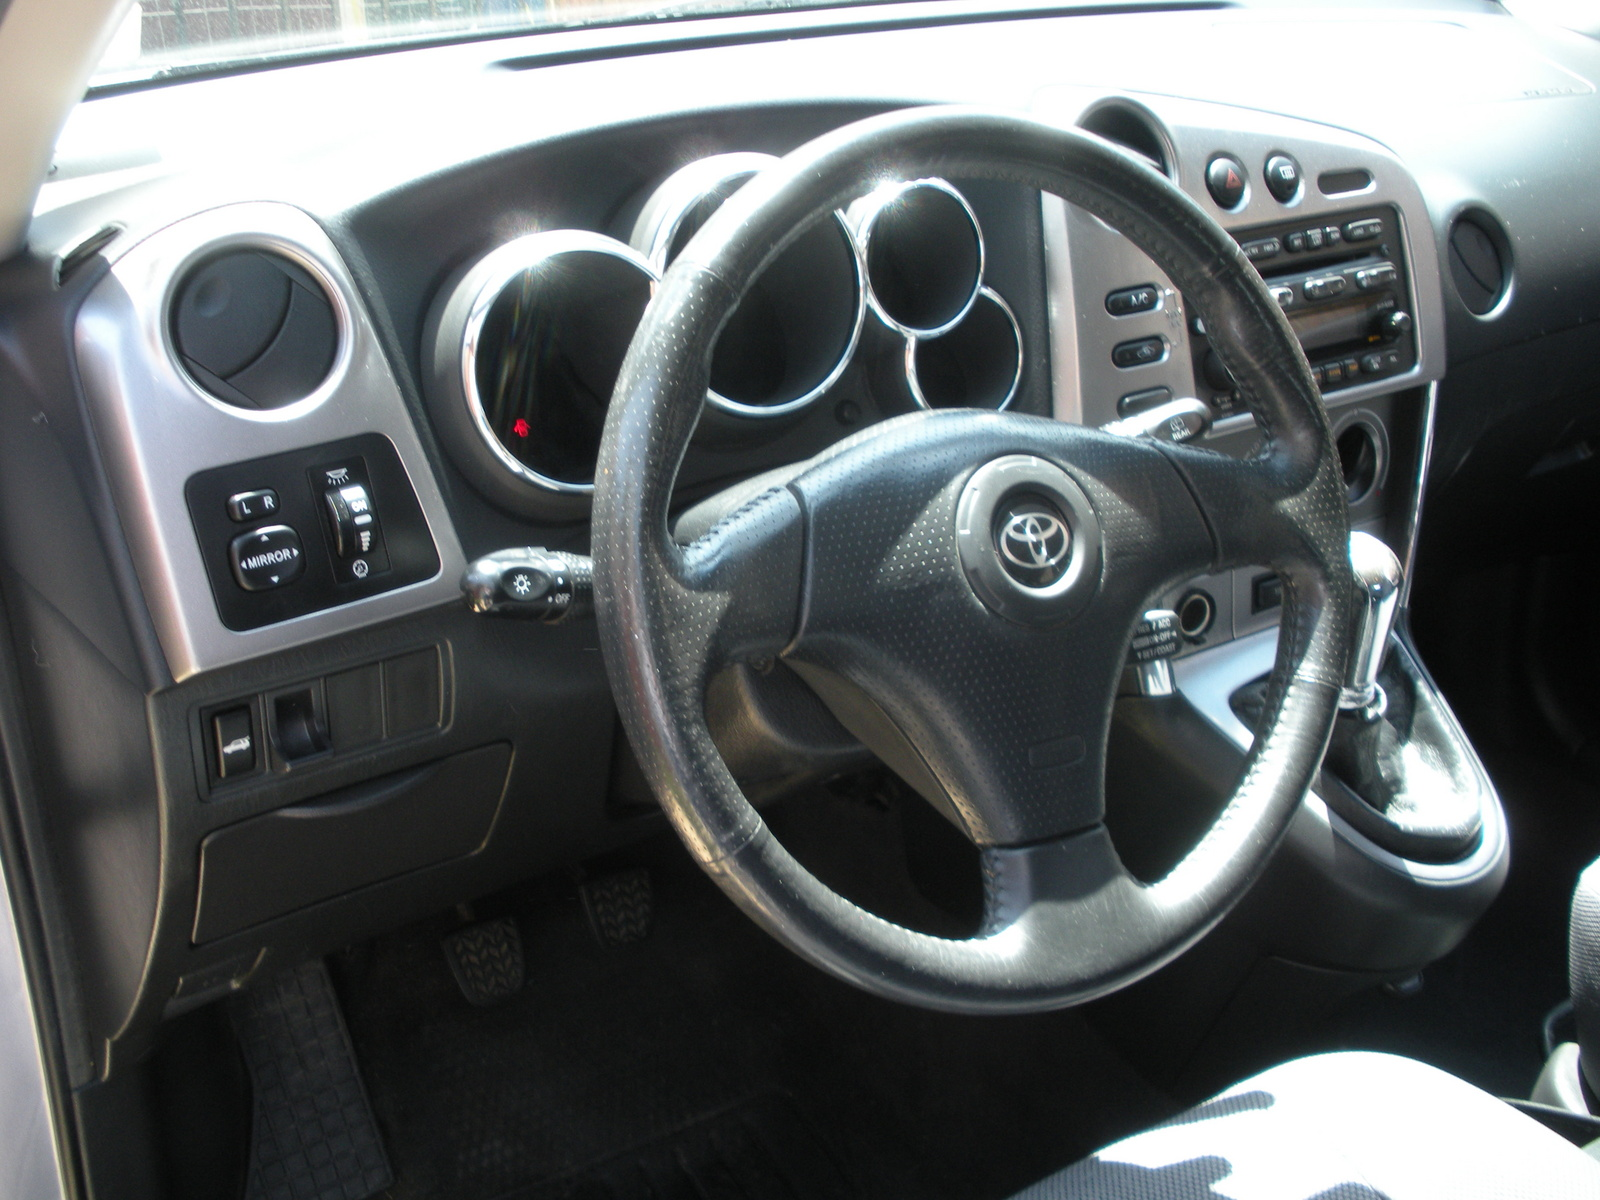 TOYOTA COROLLA MATRIX interior